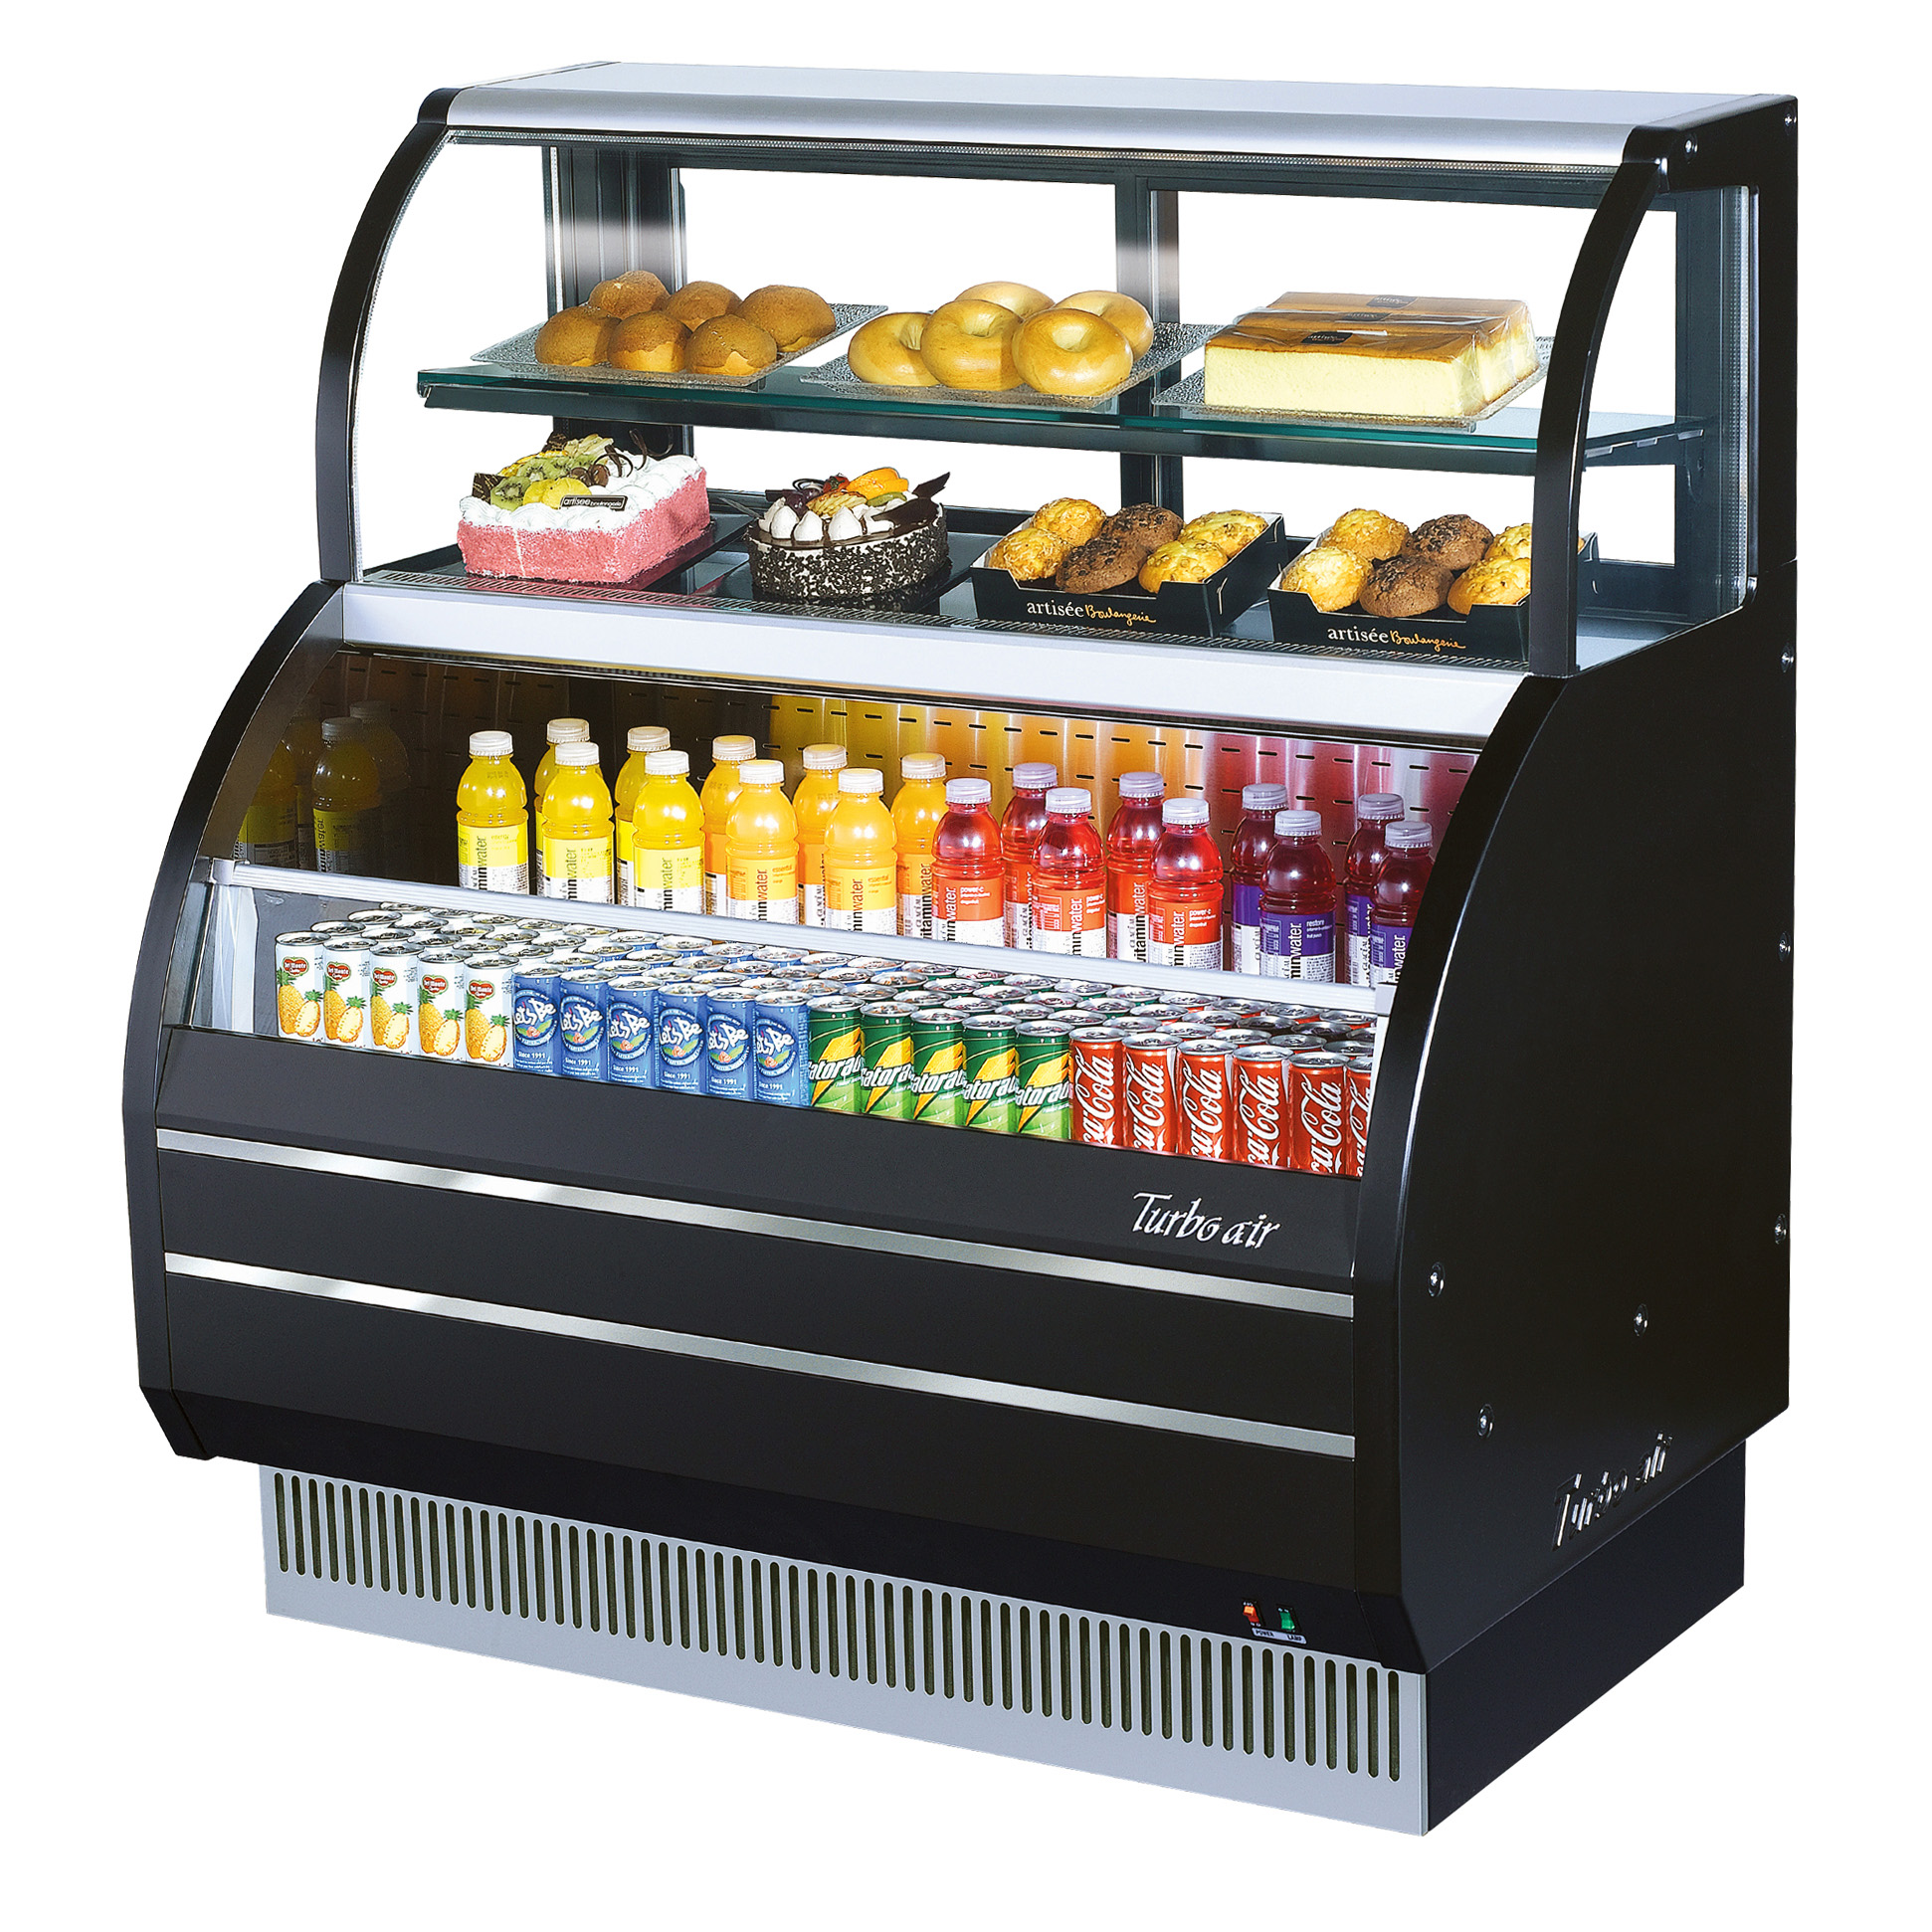 Turbo Air TOM-W-40SB-N merchandiser, open refrigerated display